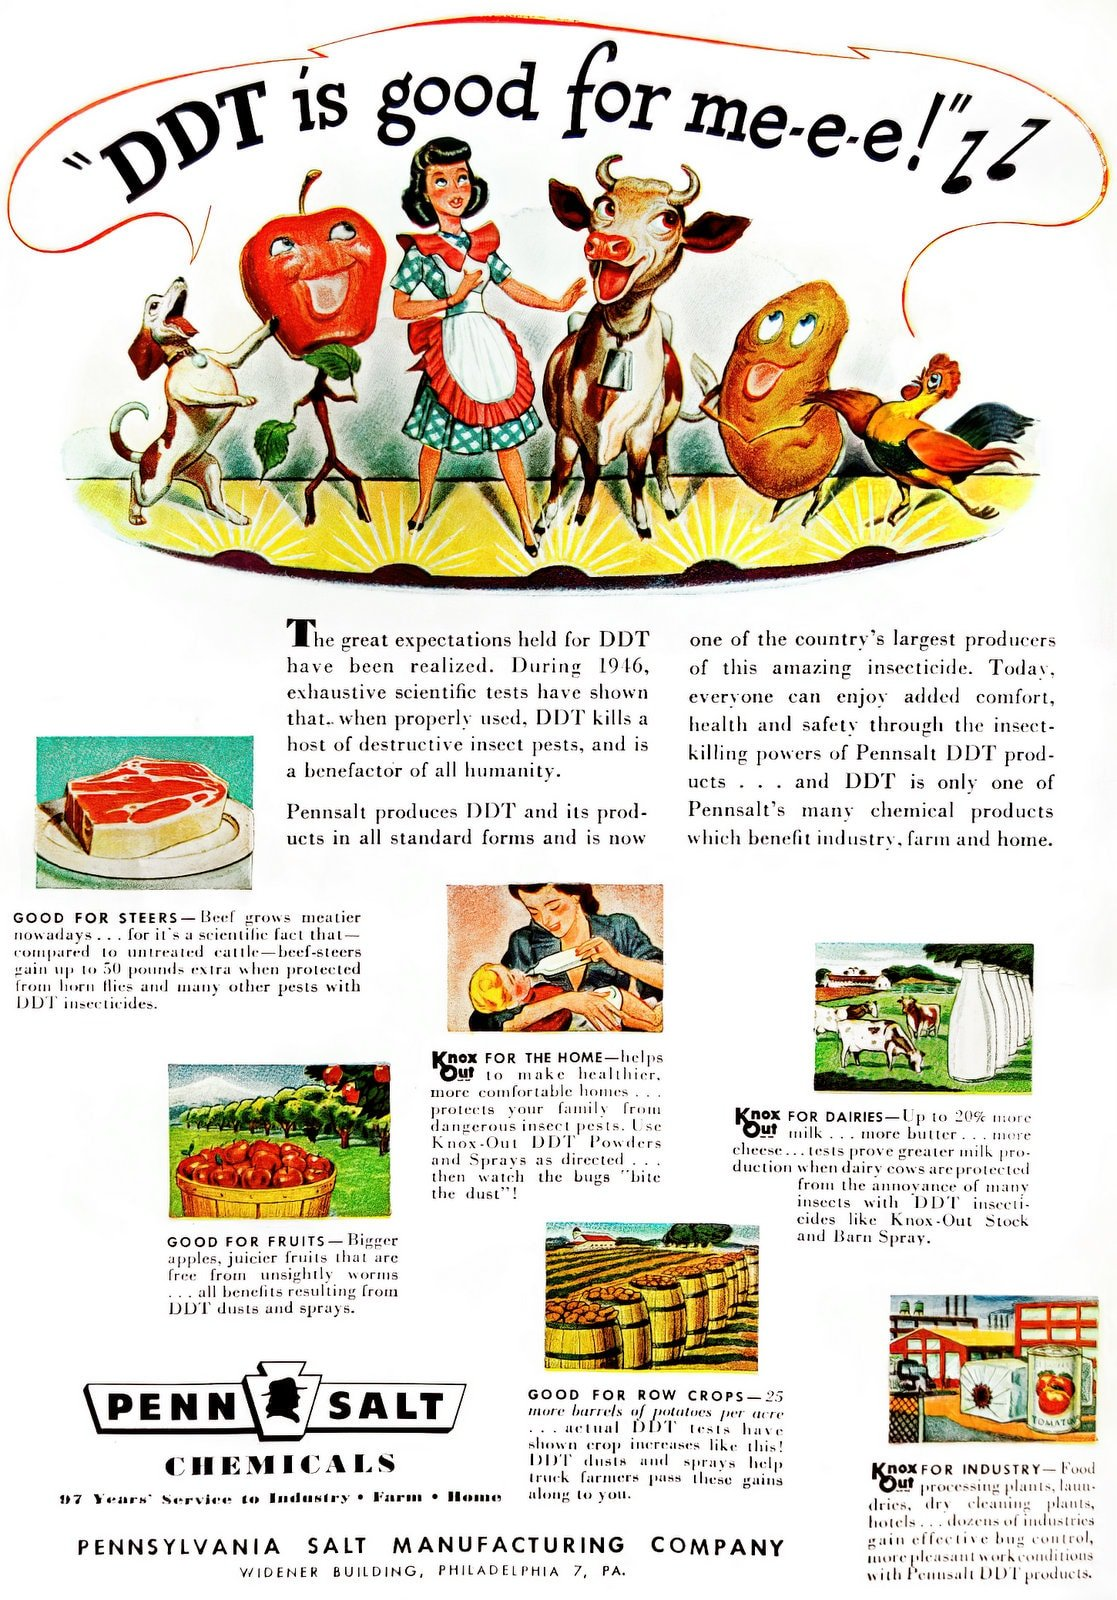 Vintage DDT is good for me-e-e ad (1947)